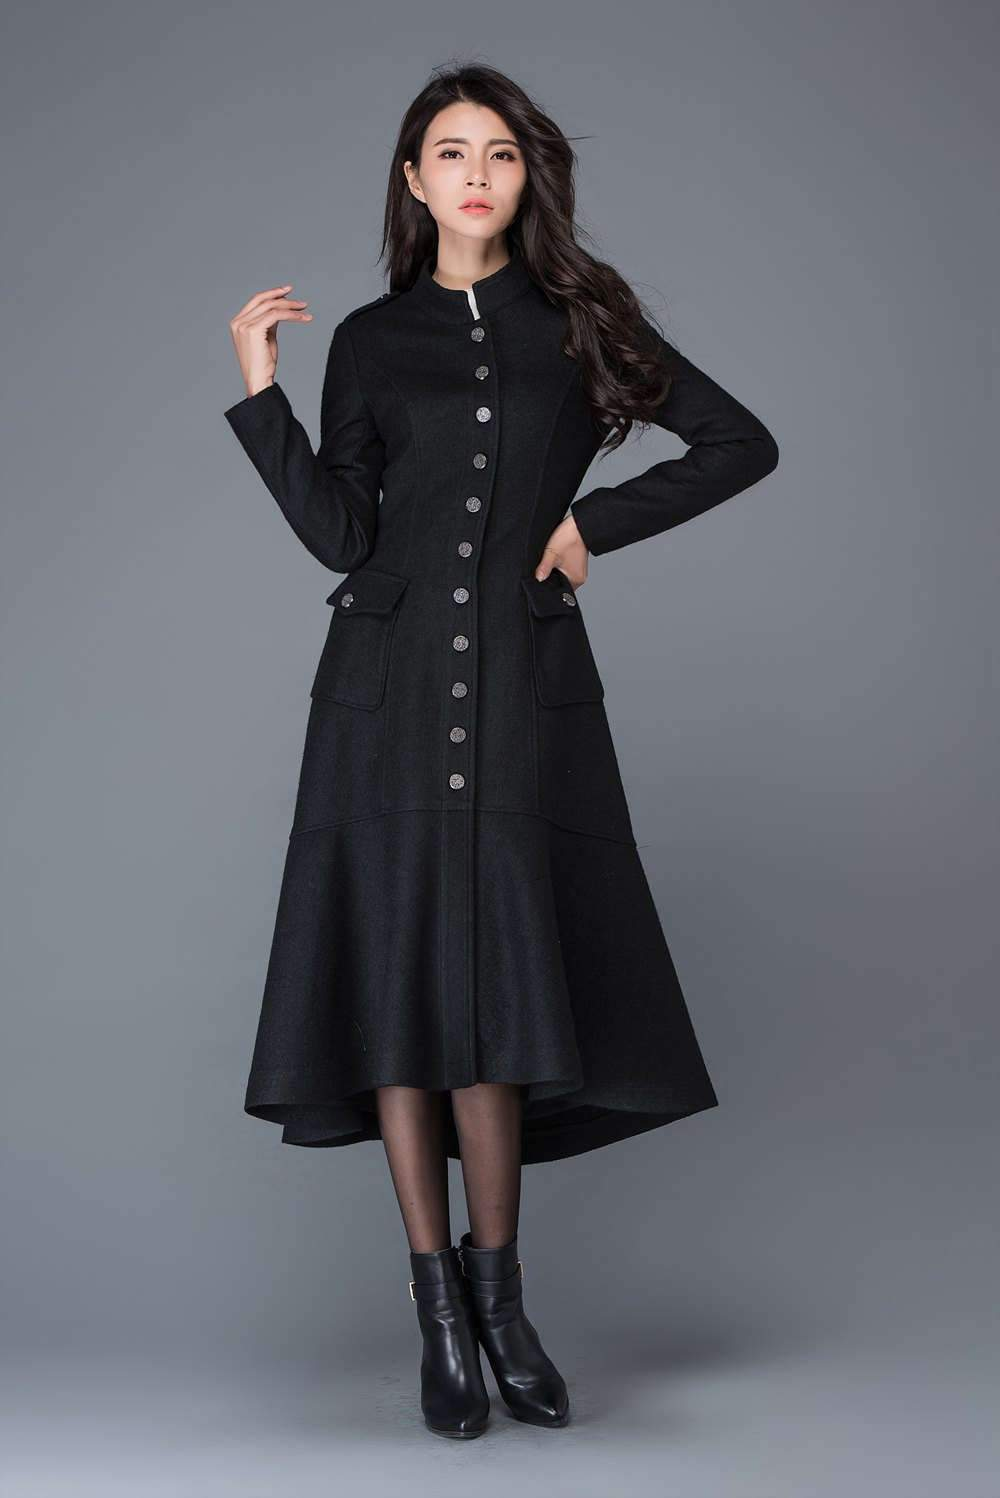 Maxi coat, wool coat, long black coat, dress coat, winter warm coats, womens coats, asymmetrical coat, women jacket, girls coat C1029